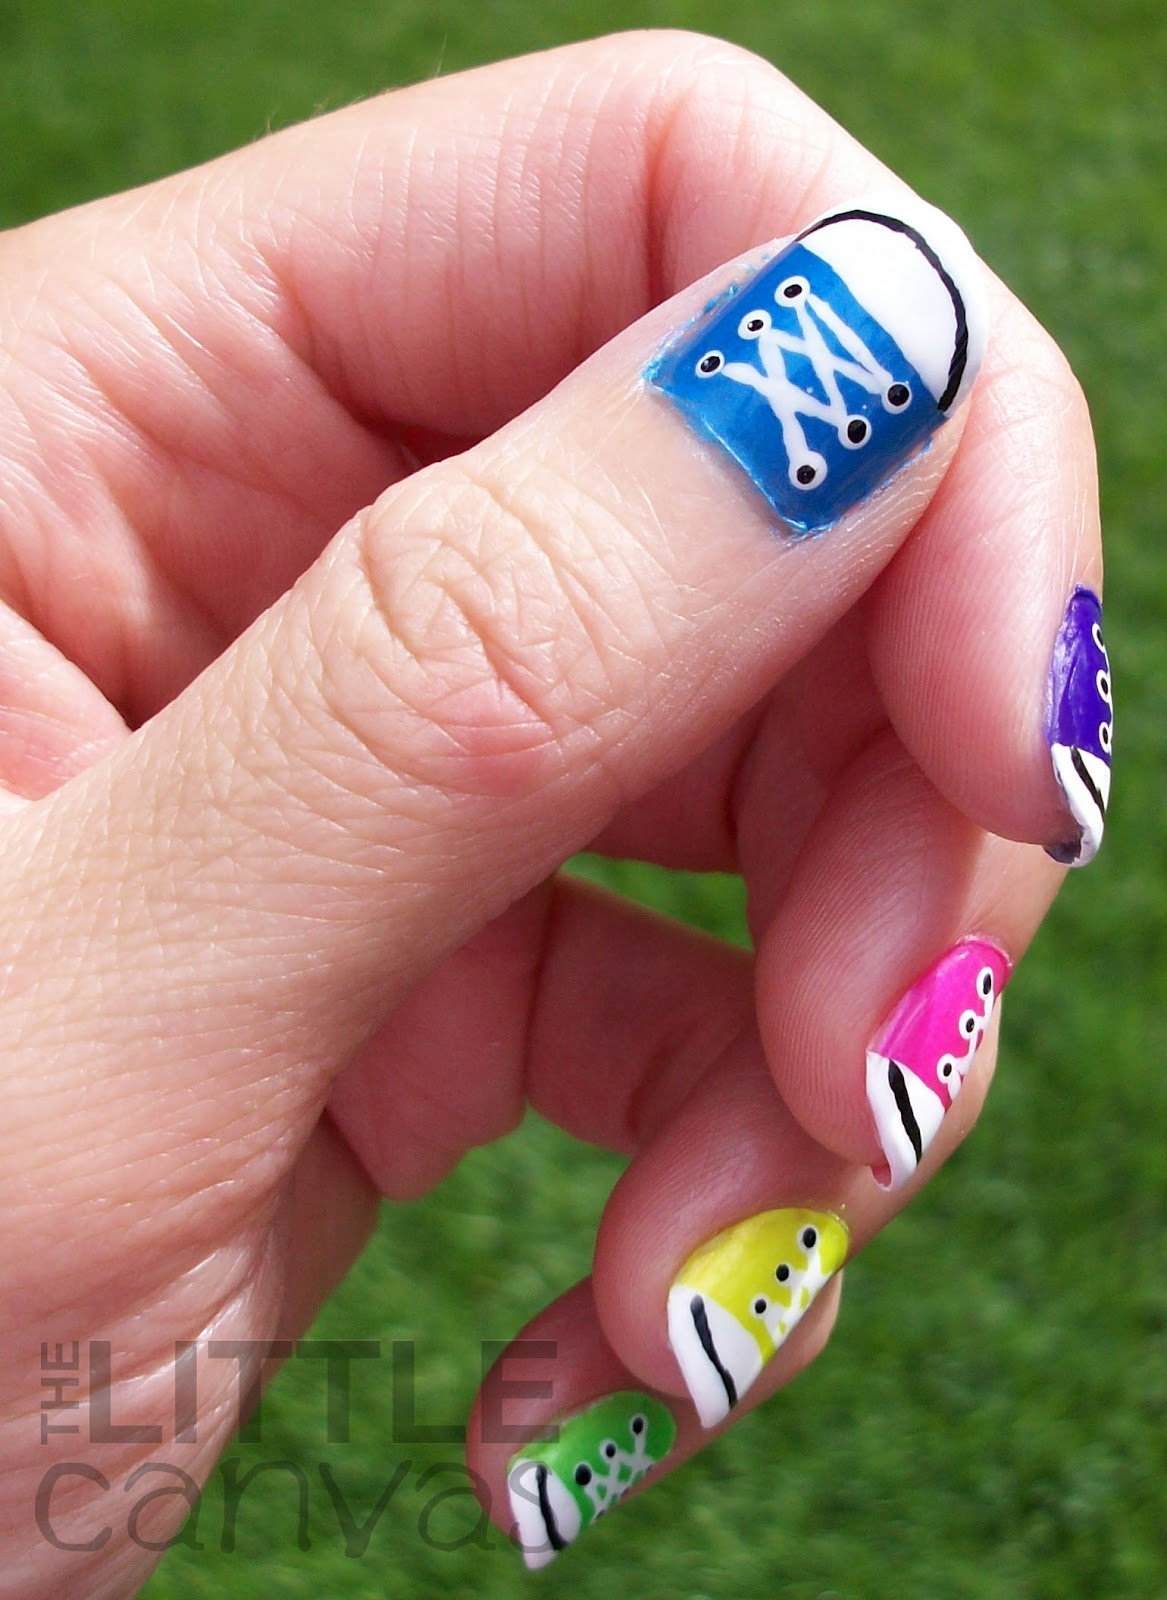 3a133abd9be7 31 Day Challenge - Day 7 - Rainbow Nails - Converse Nail Art! - The ...